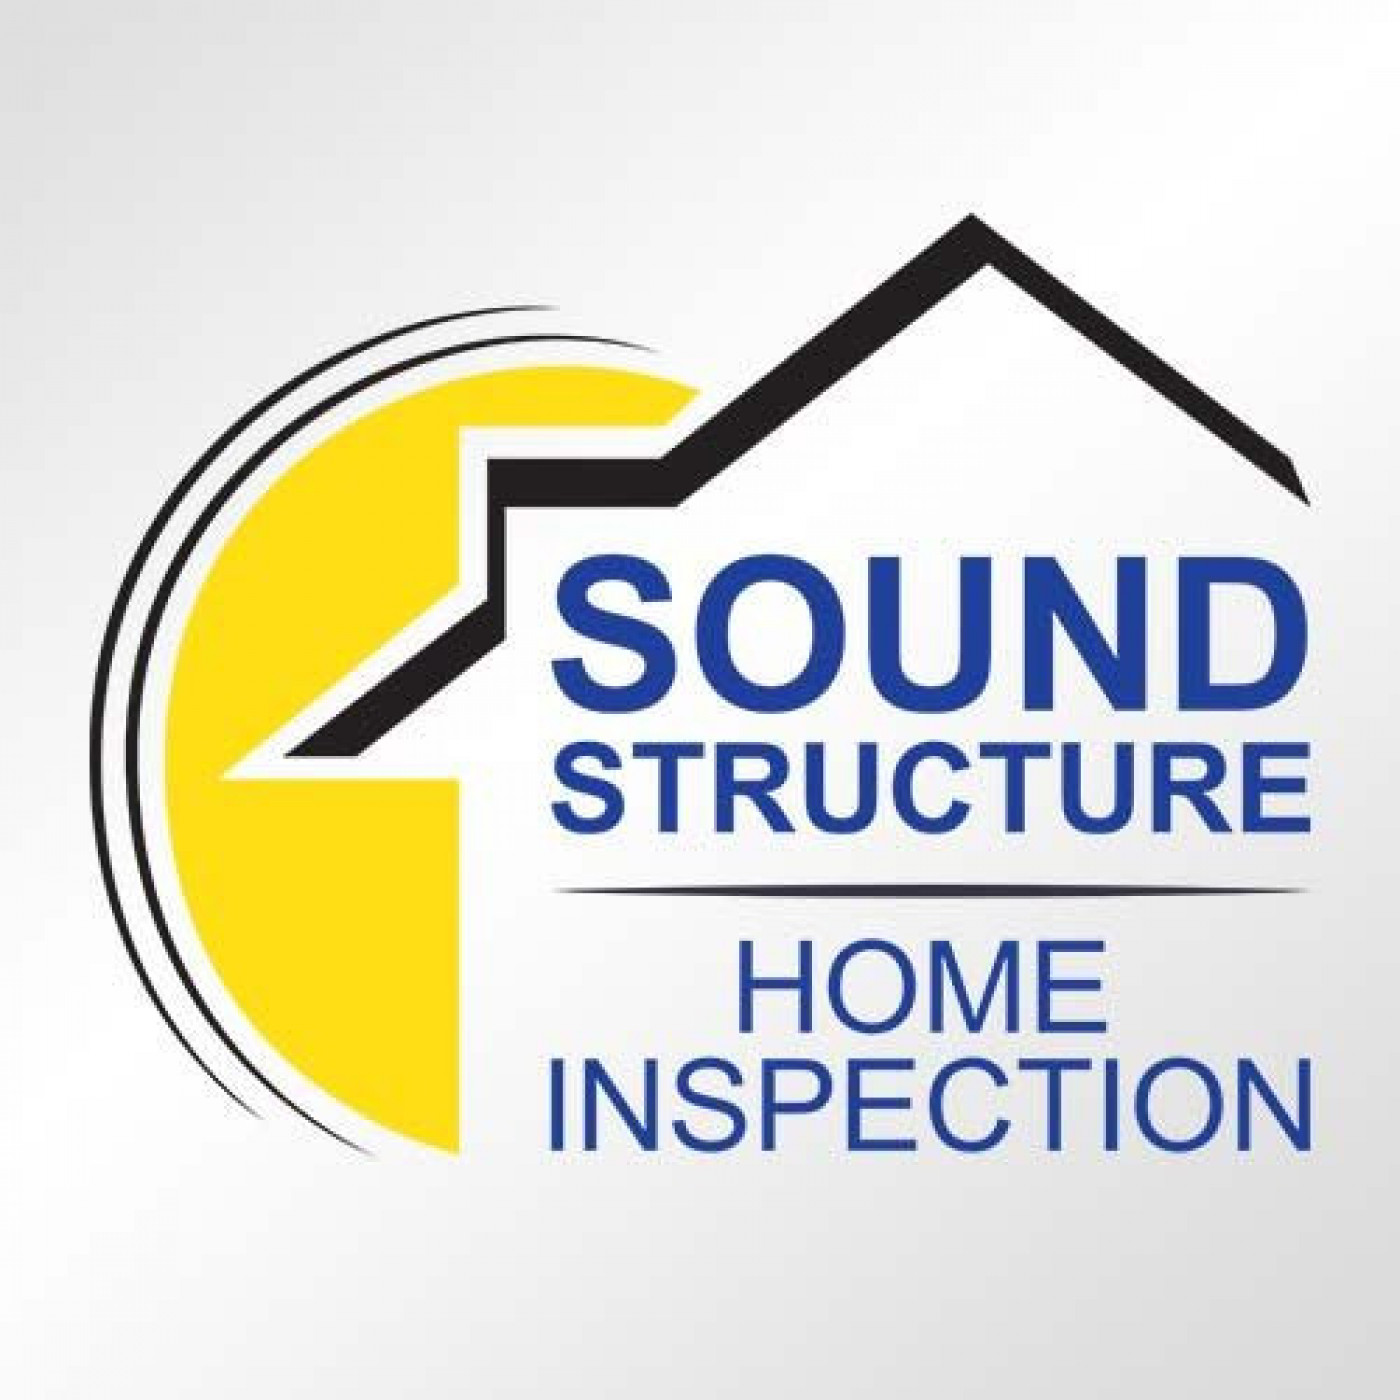 Buying a Home in 2020? Get an Inspection!